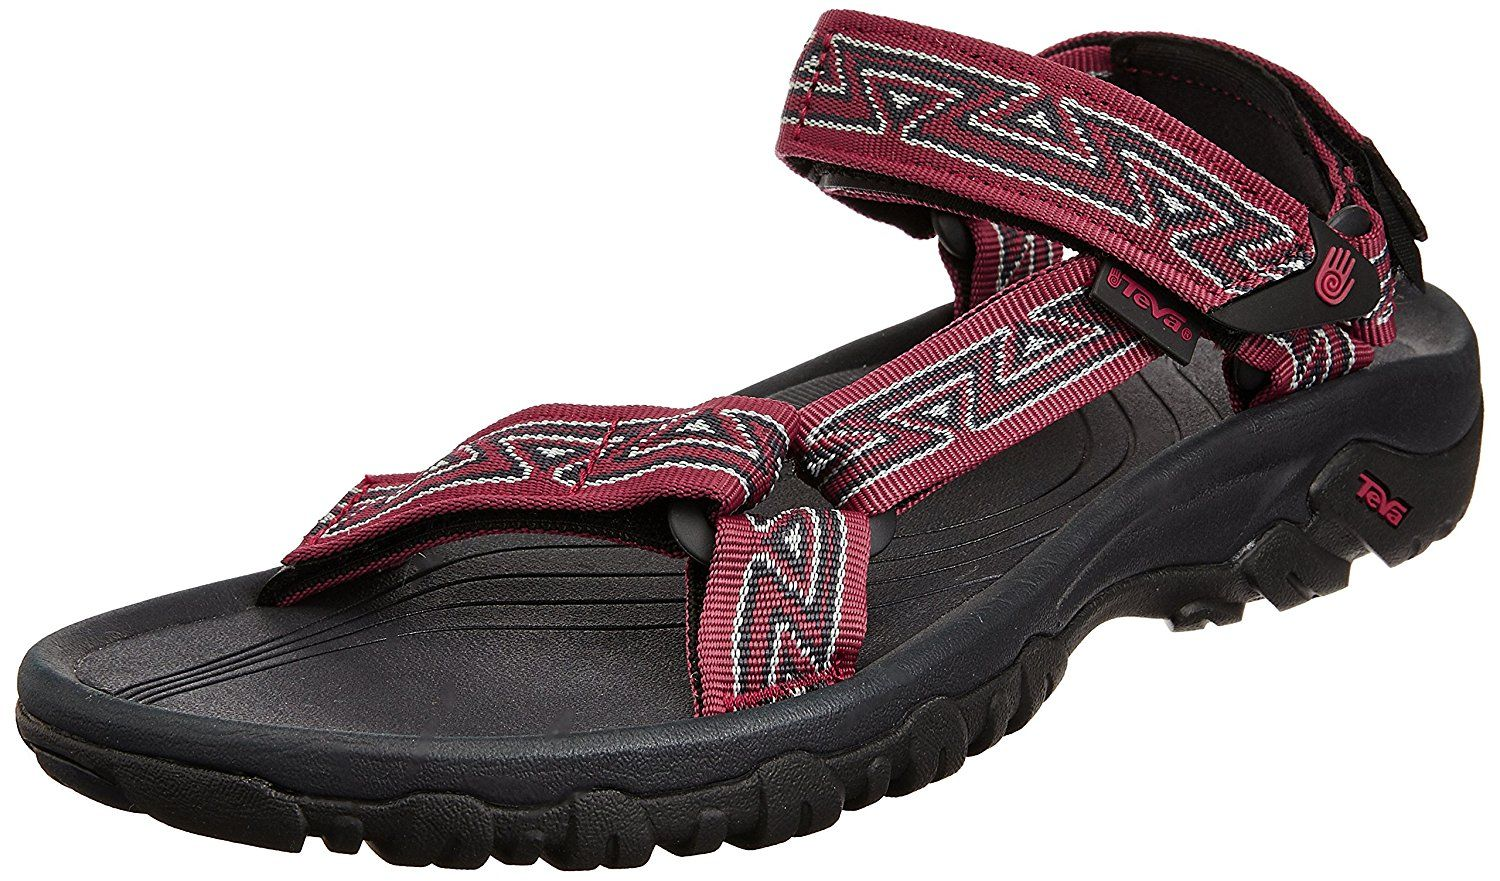 238f7a819f1370 Teva Men s Hurricane XLT Sandal     Don t get left behind